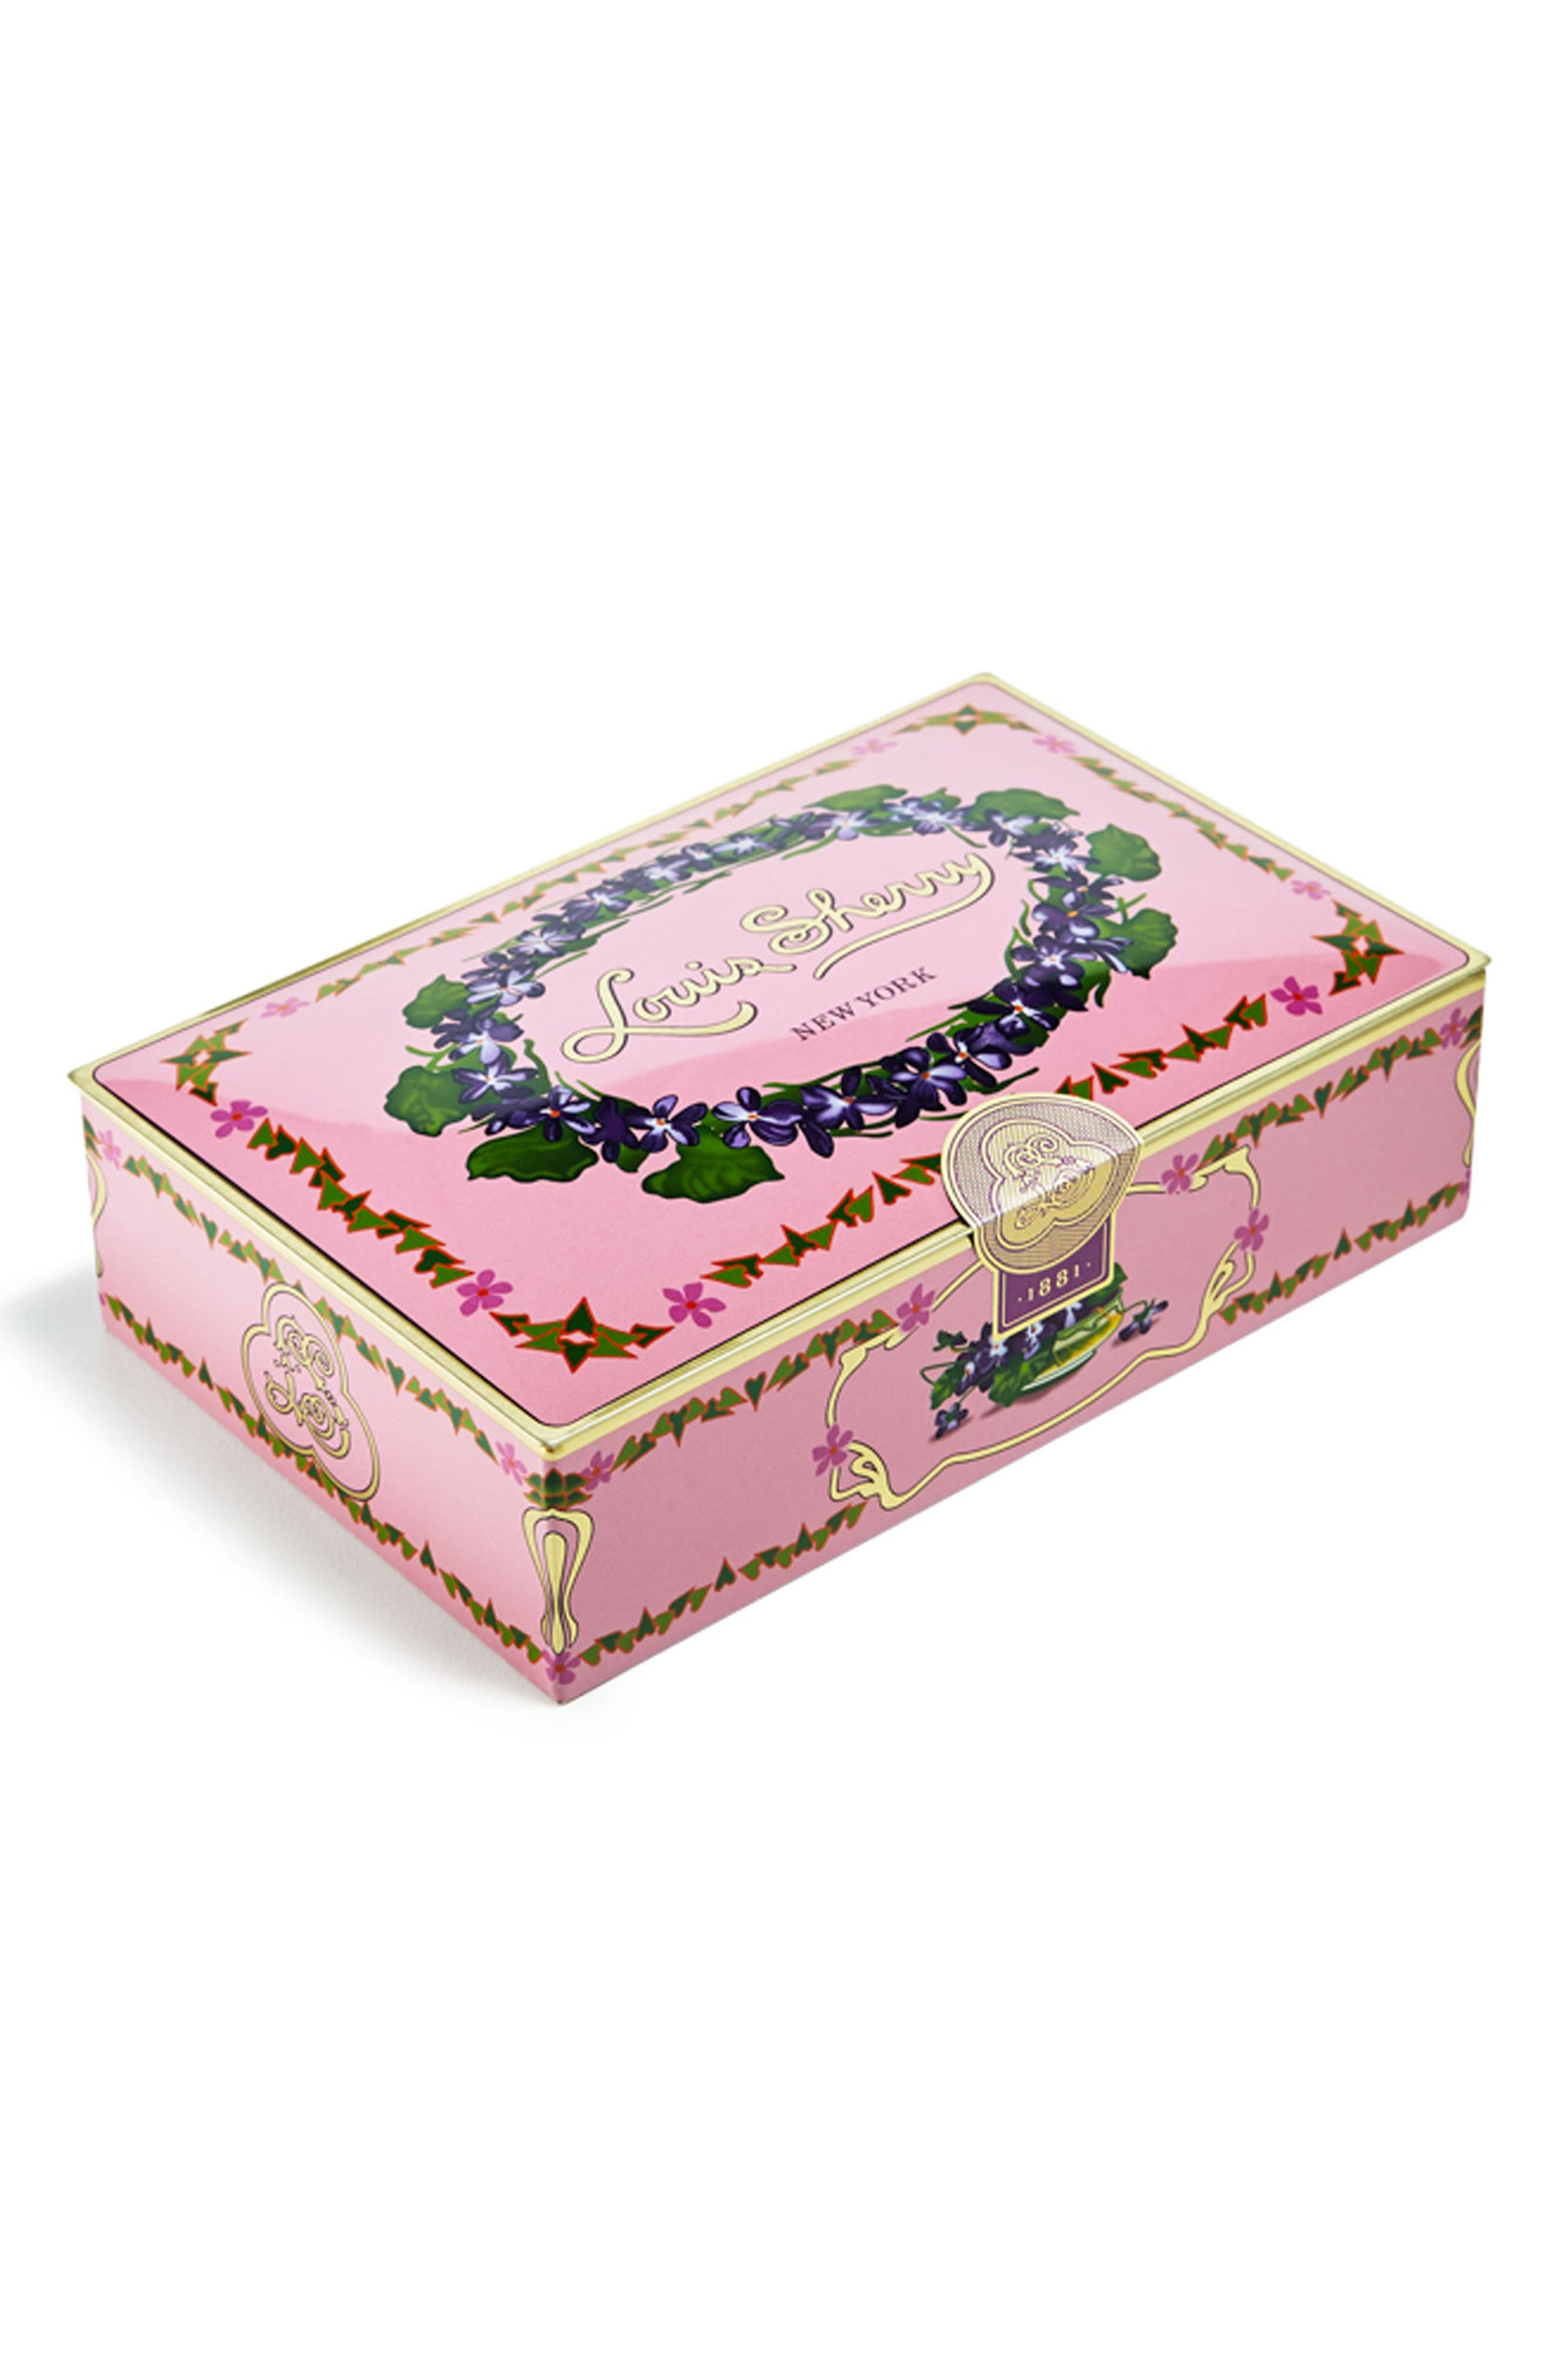 Orchid 12-Piece Chocolate Truffle Tin,                             Main thumbnail 1, color,                             PINK WITH CIRCLE OF VIOLETS